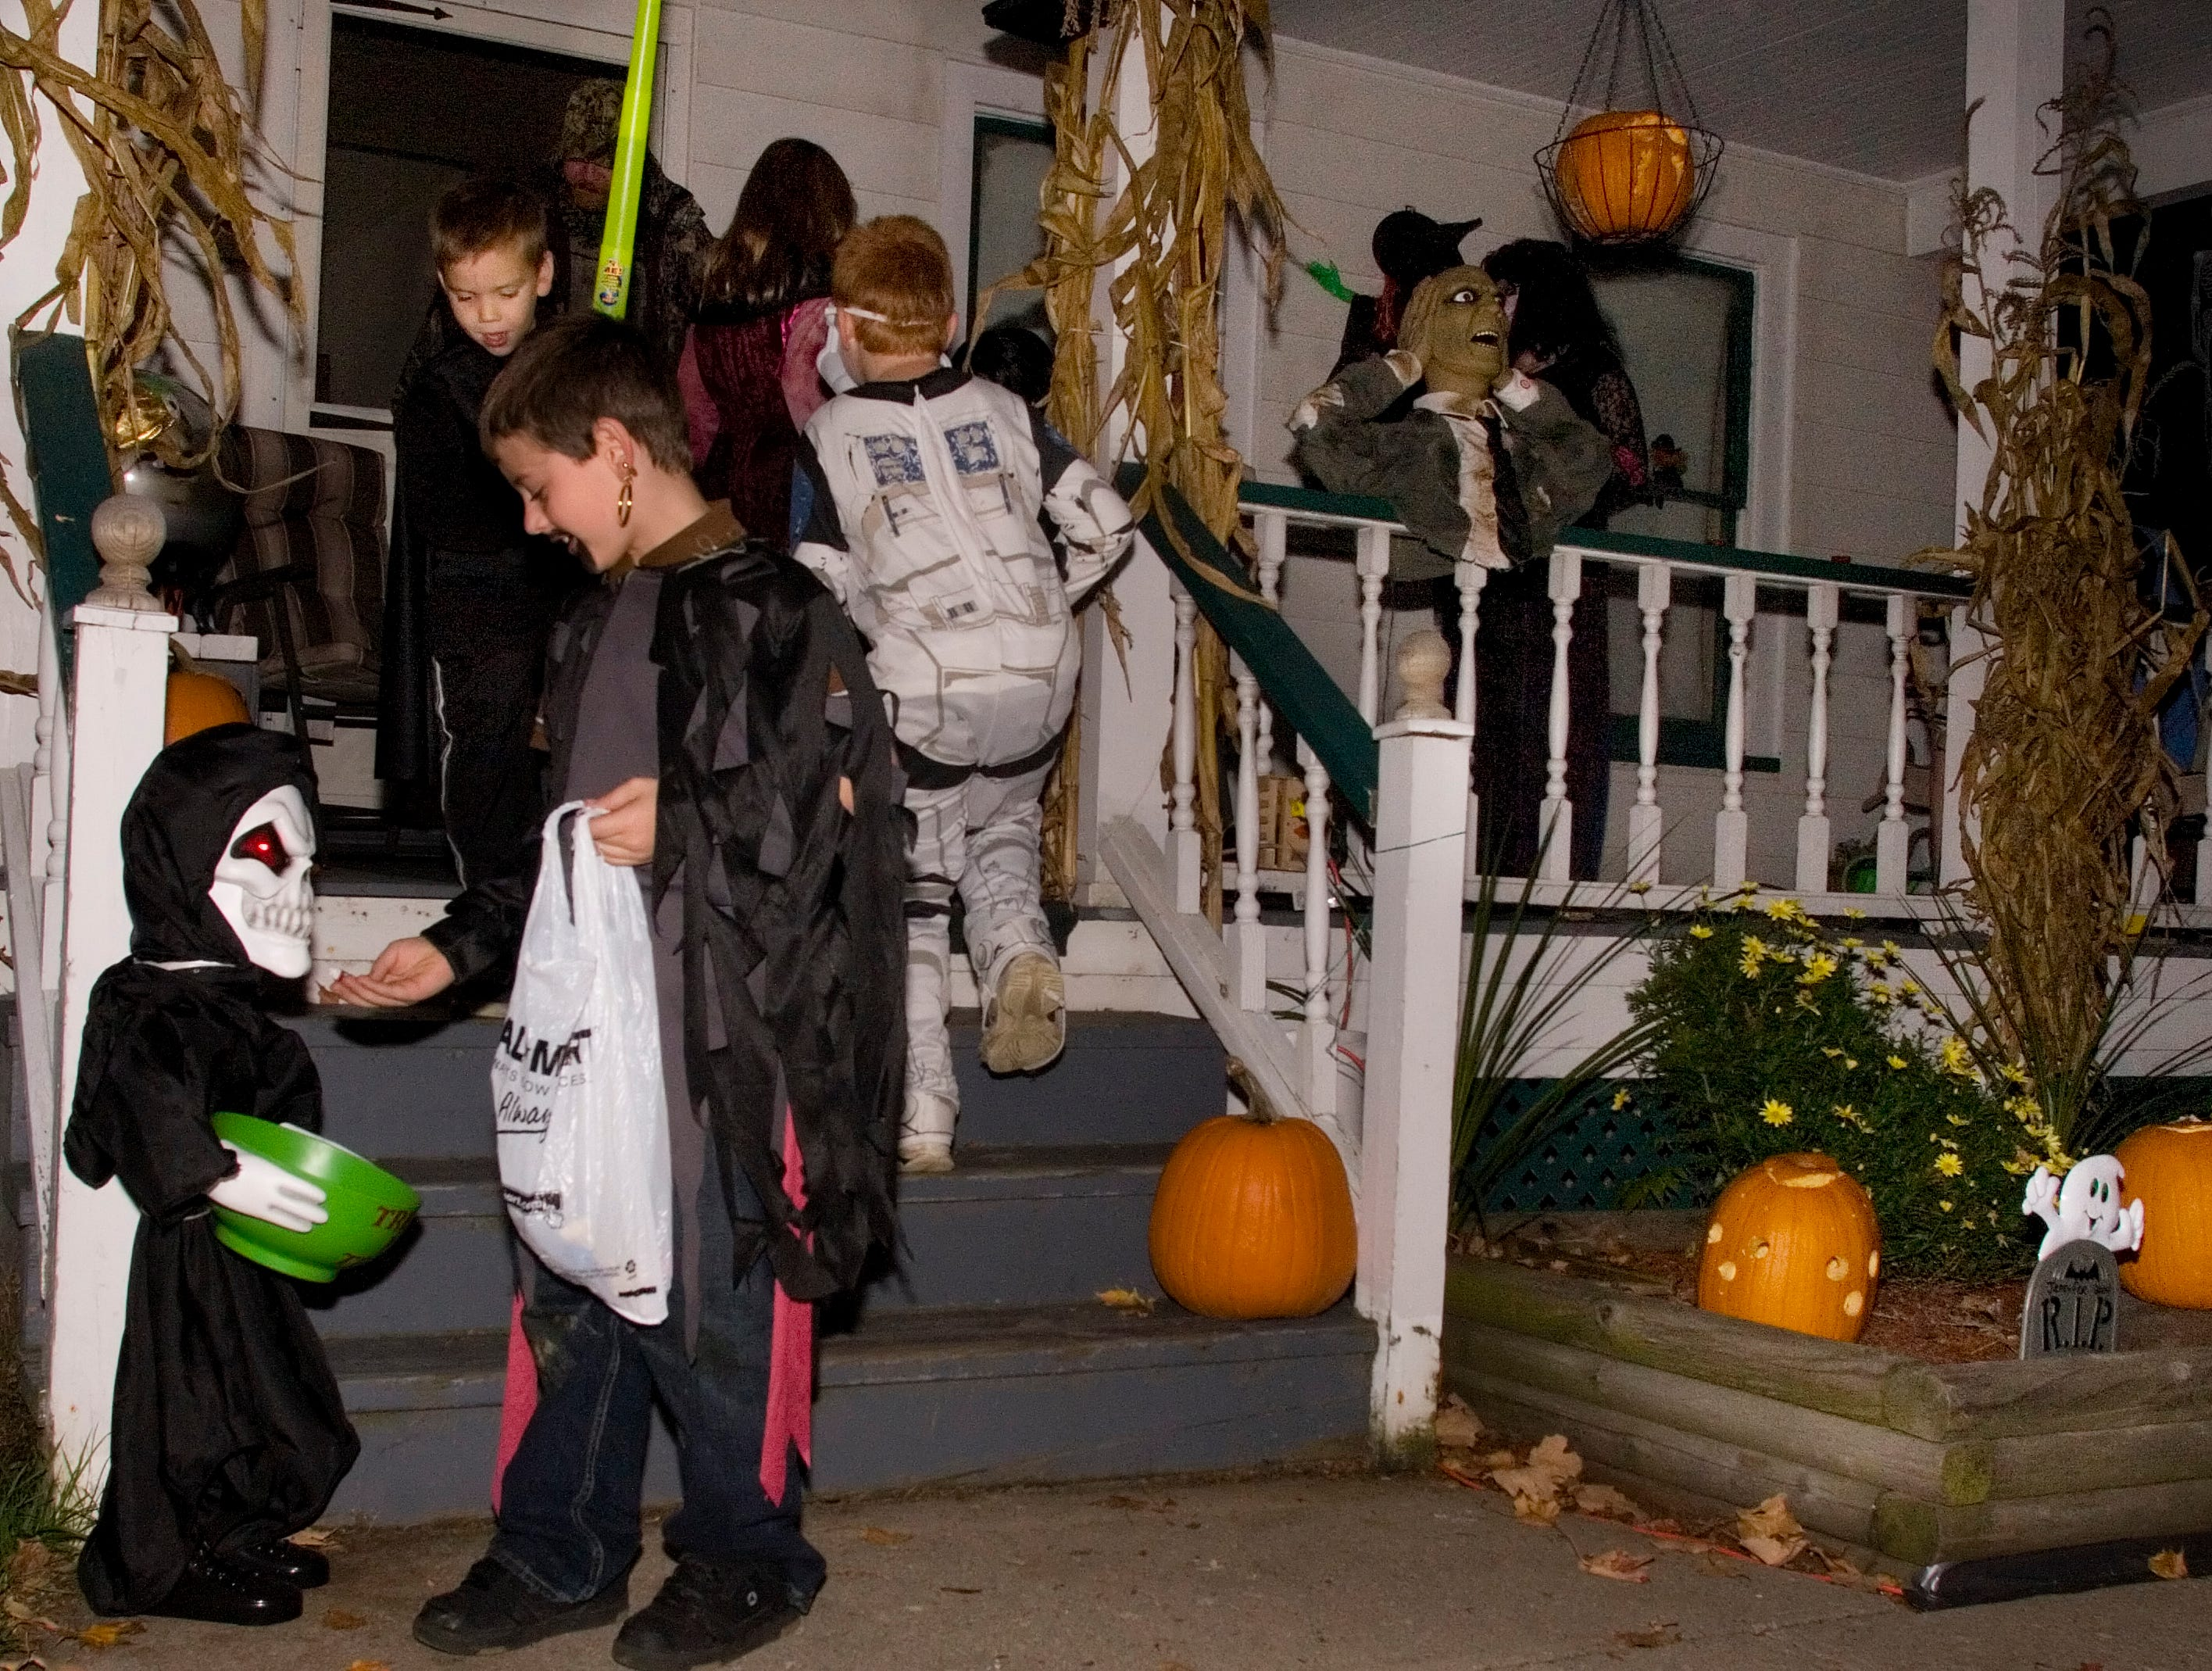 "2007: Patrick Bannon, 7, of Watkins Glen, dressed as ""Davy Jones,"" admires the decorations at the Cruttenden residence on Porter Street in Watkins Glen as Walker Richtmyer, 6, of Watkins Glen, dressed as Darth Vader descends the stair his brother Chase, 9, dressed as a clone trooper, center, prepares to collect candy during trick-or-treating in Watkins Glen."